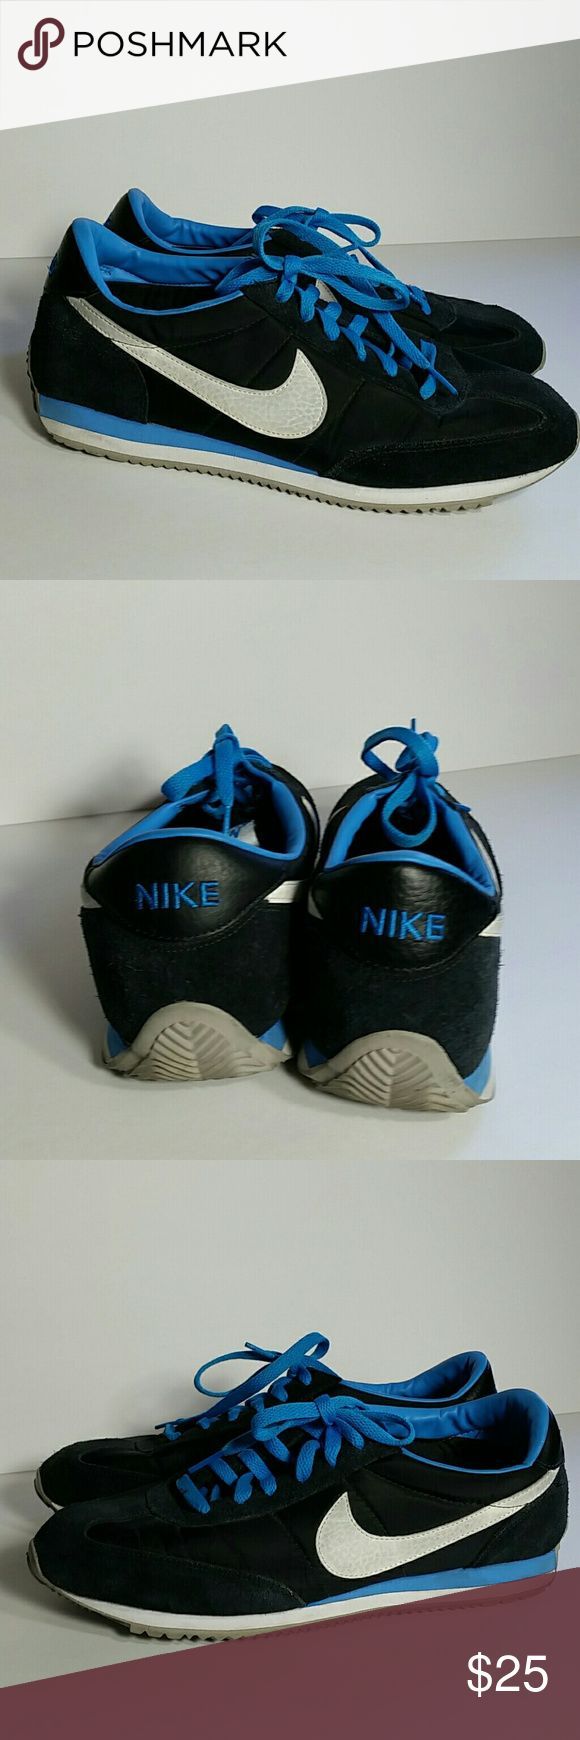 NIKE Oceania Retro Sneaker Low Top Shoes Size 11 Womens black and blue low top retro nike Oceania shoes. Black with white swoosh side logo, blue laces and detailing. Gray bottoms. Preowned in good condition, could benefit from a cleaning and the bottoms show signs of use. Ladies size 11 Nike Shoes Sneakers